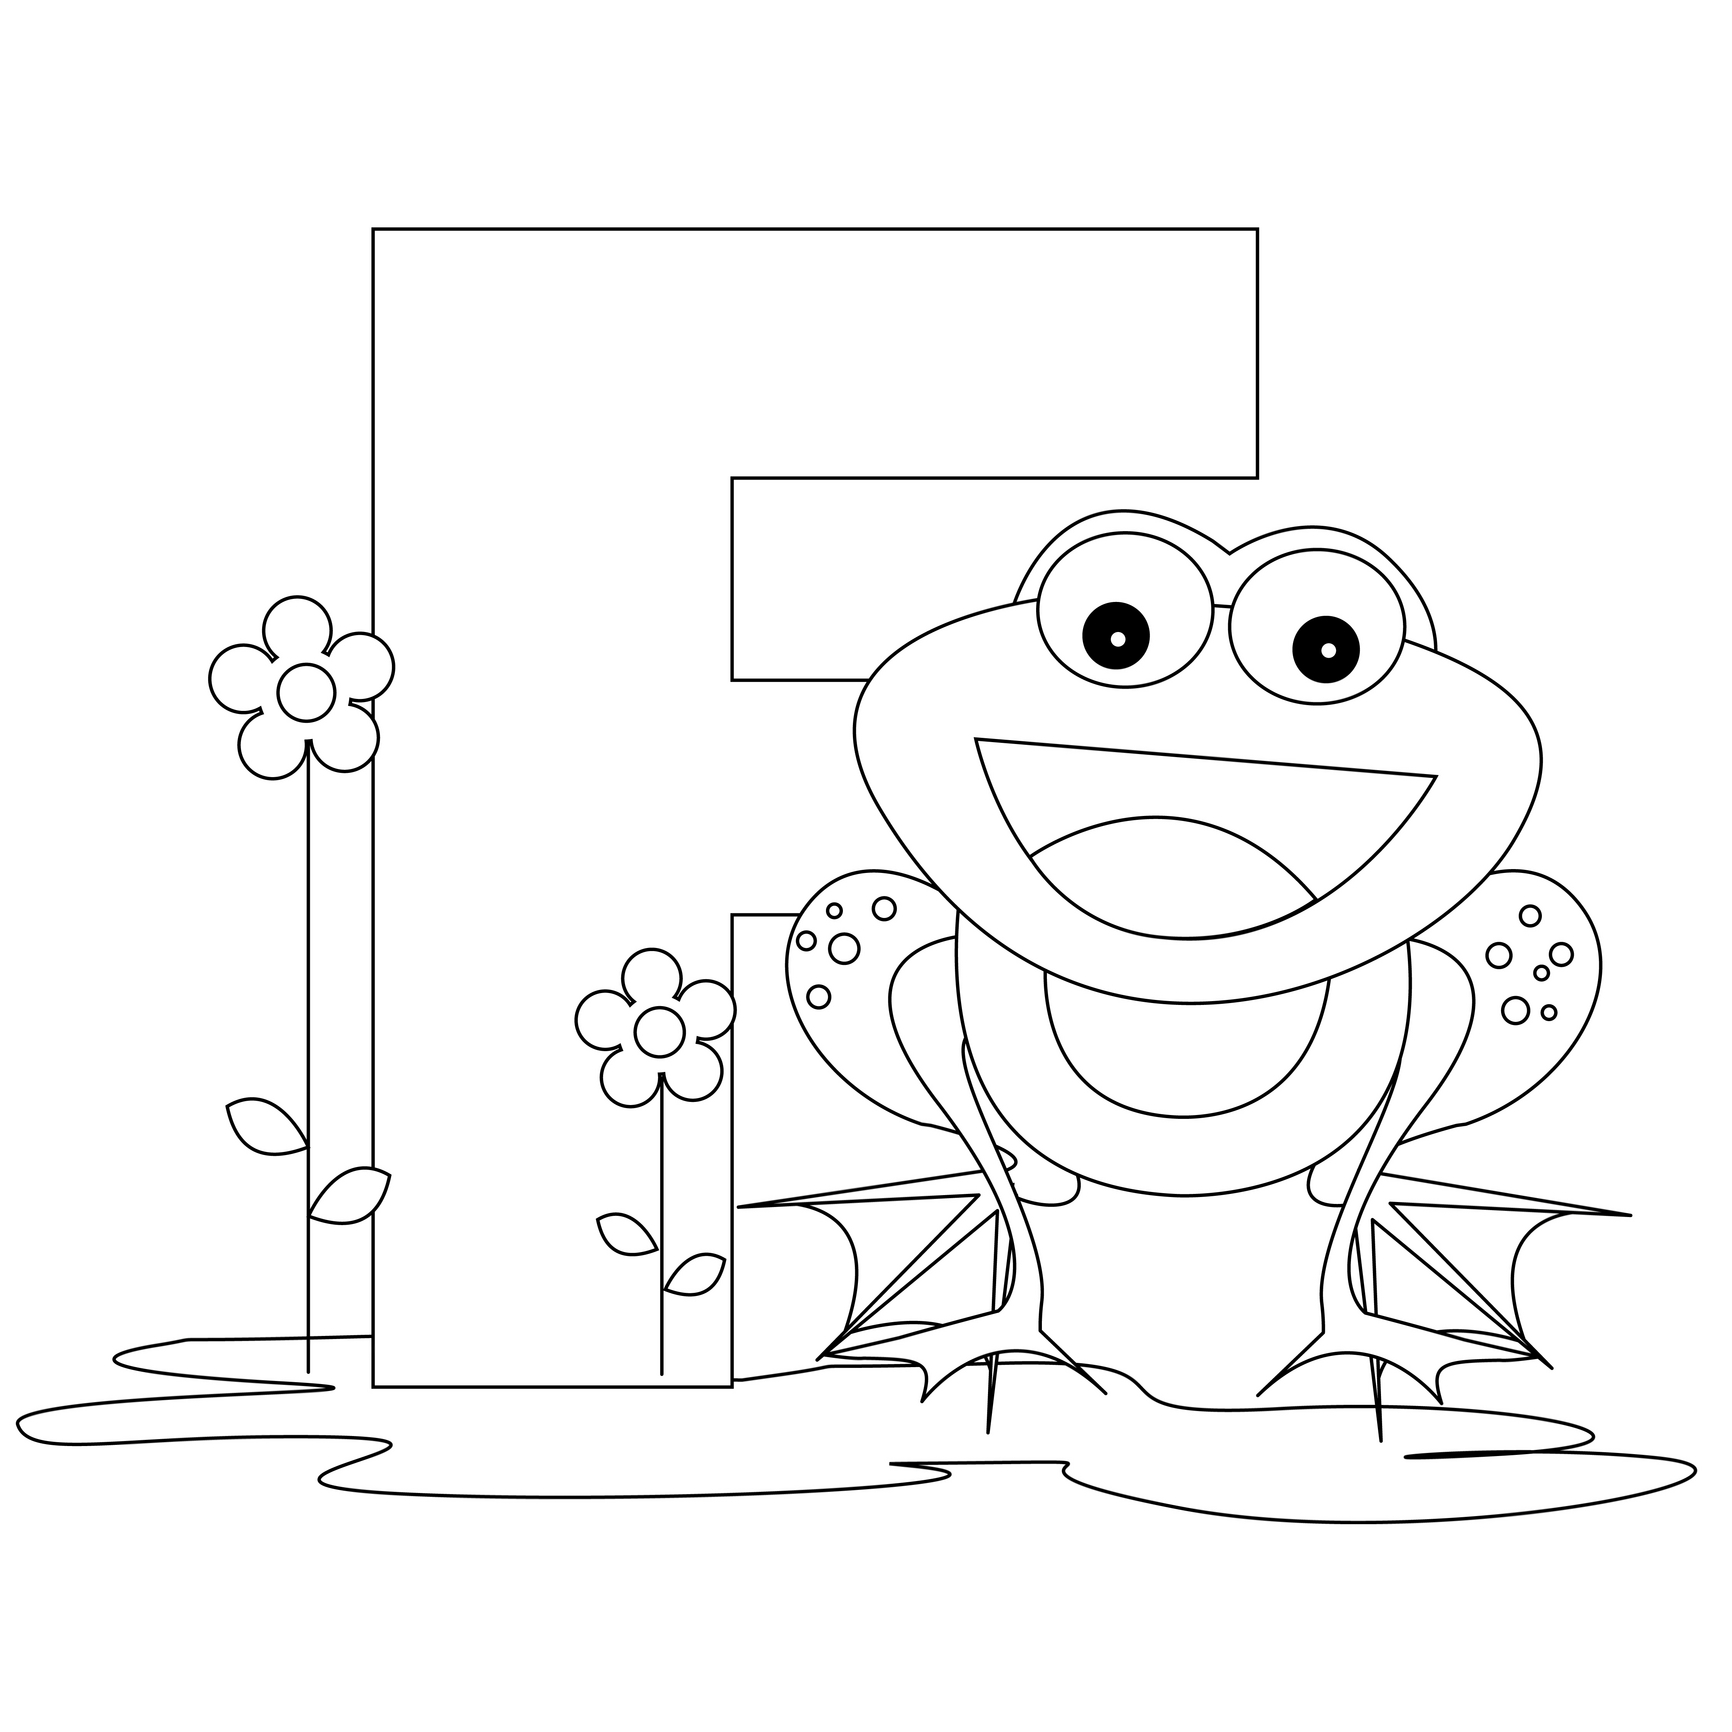 alphabet letters coloring pages n - photo#38